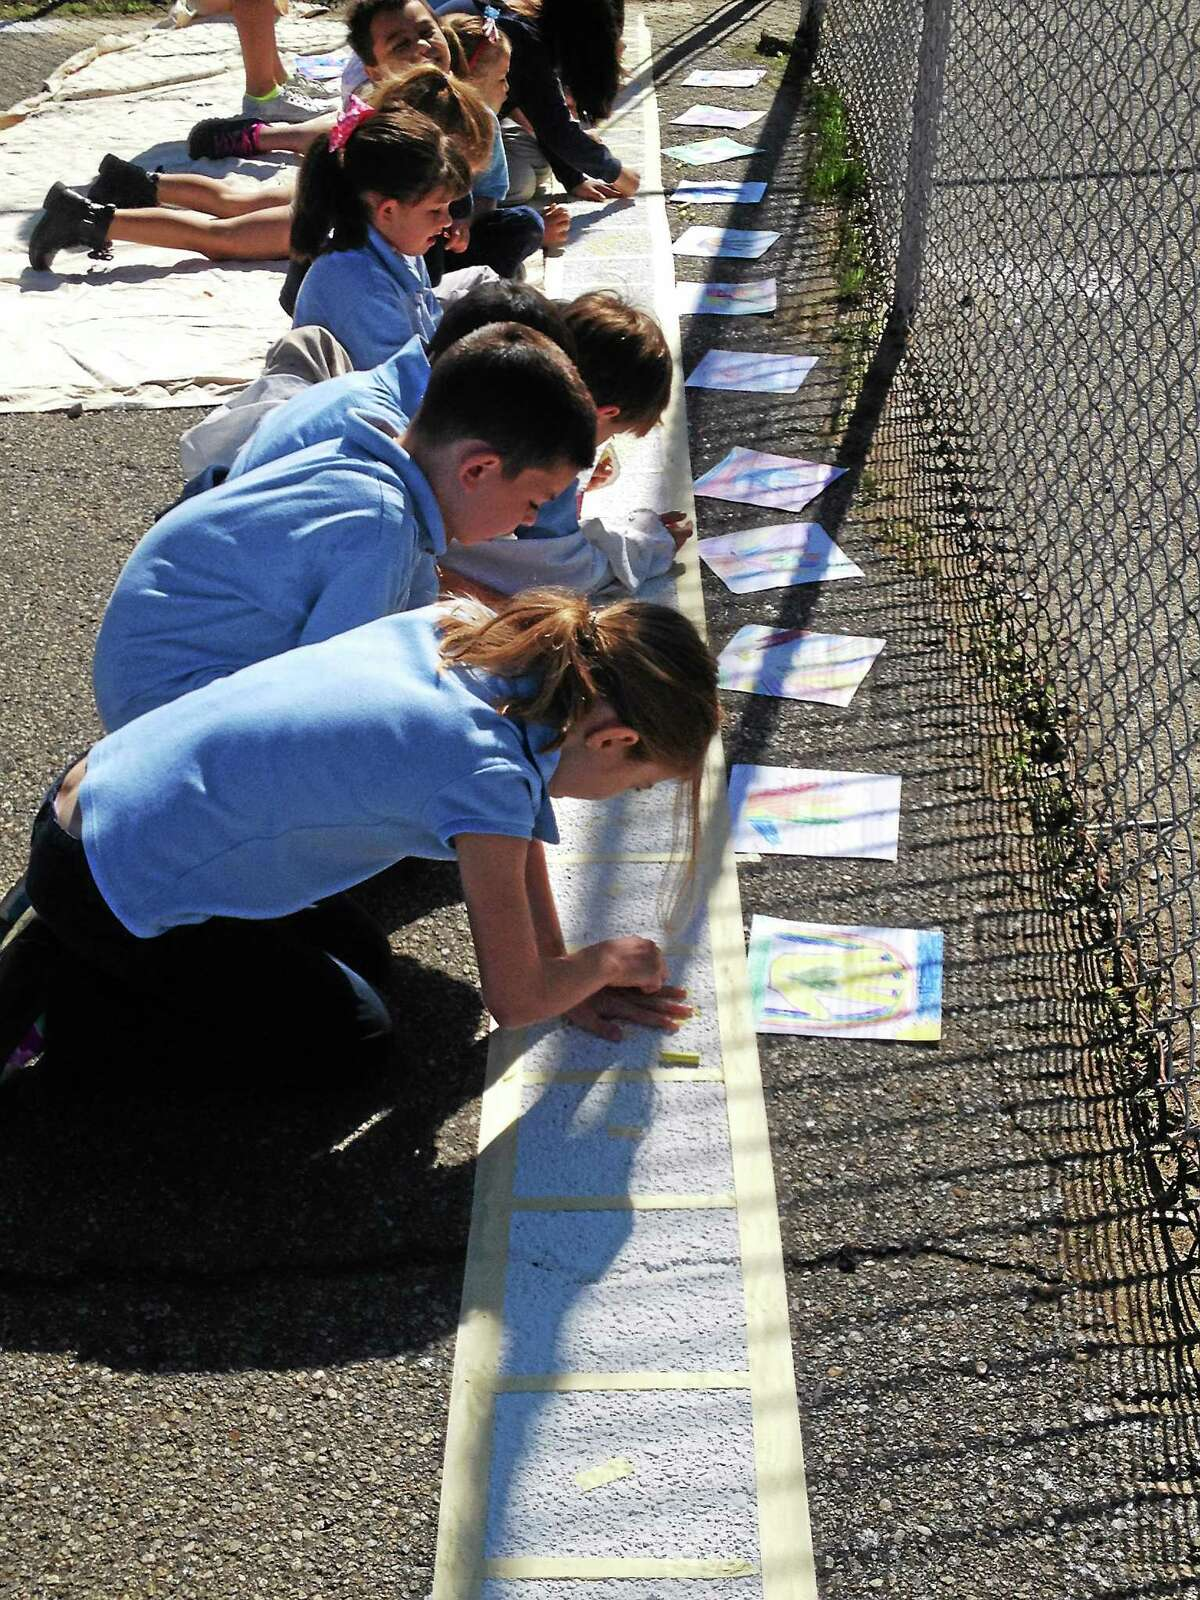 Students at John G. Prendergast school work on creating a border for a new play area.